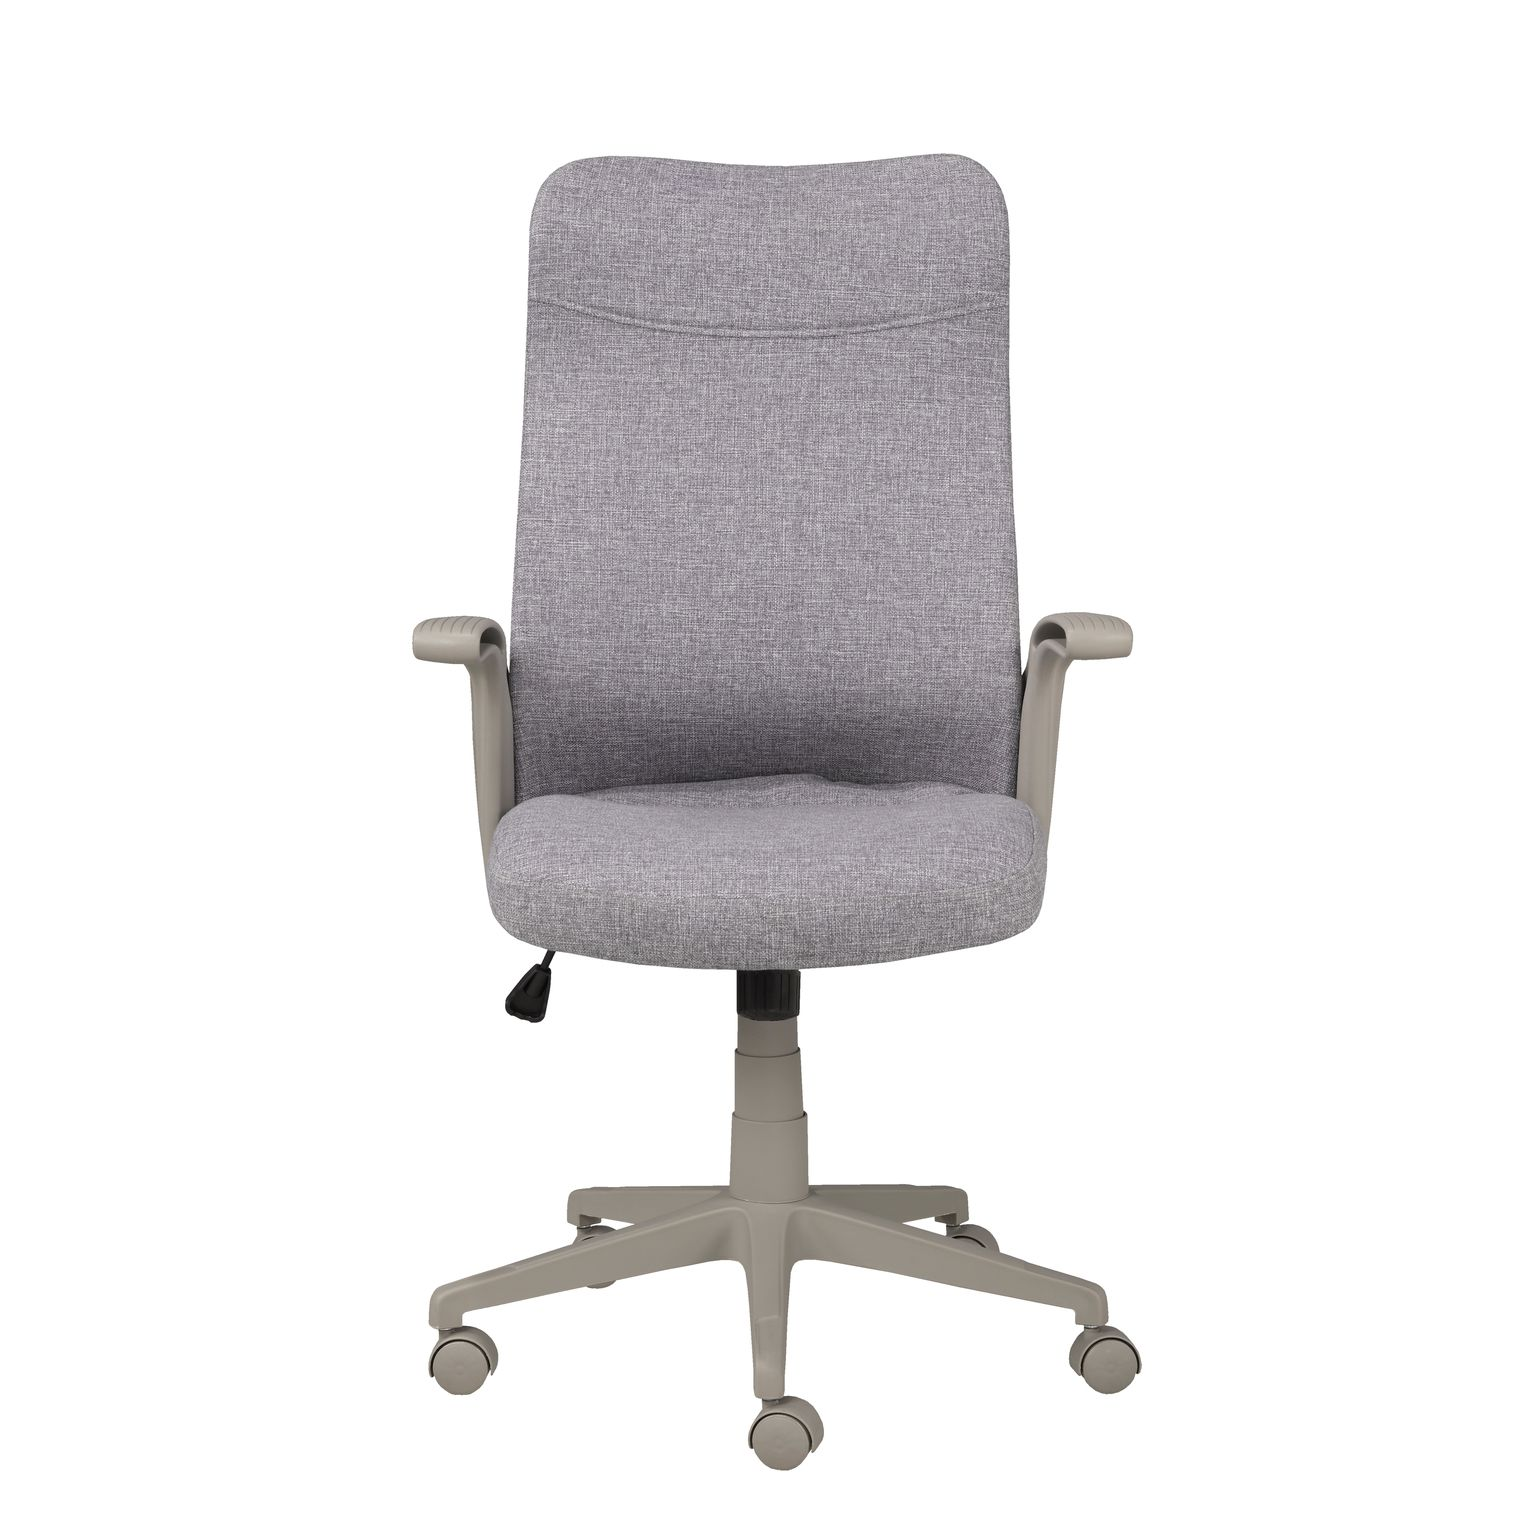 OFFICE CHAIR - GREY